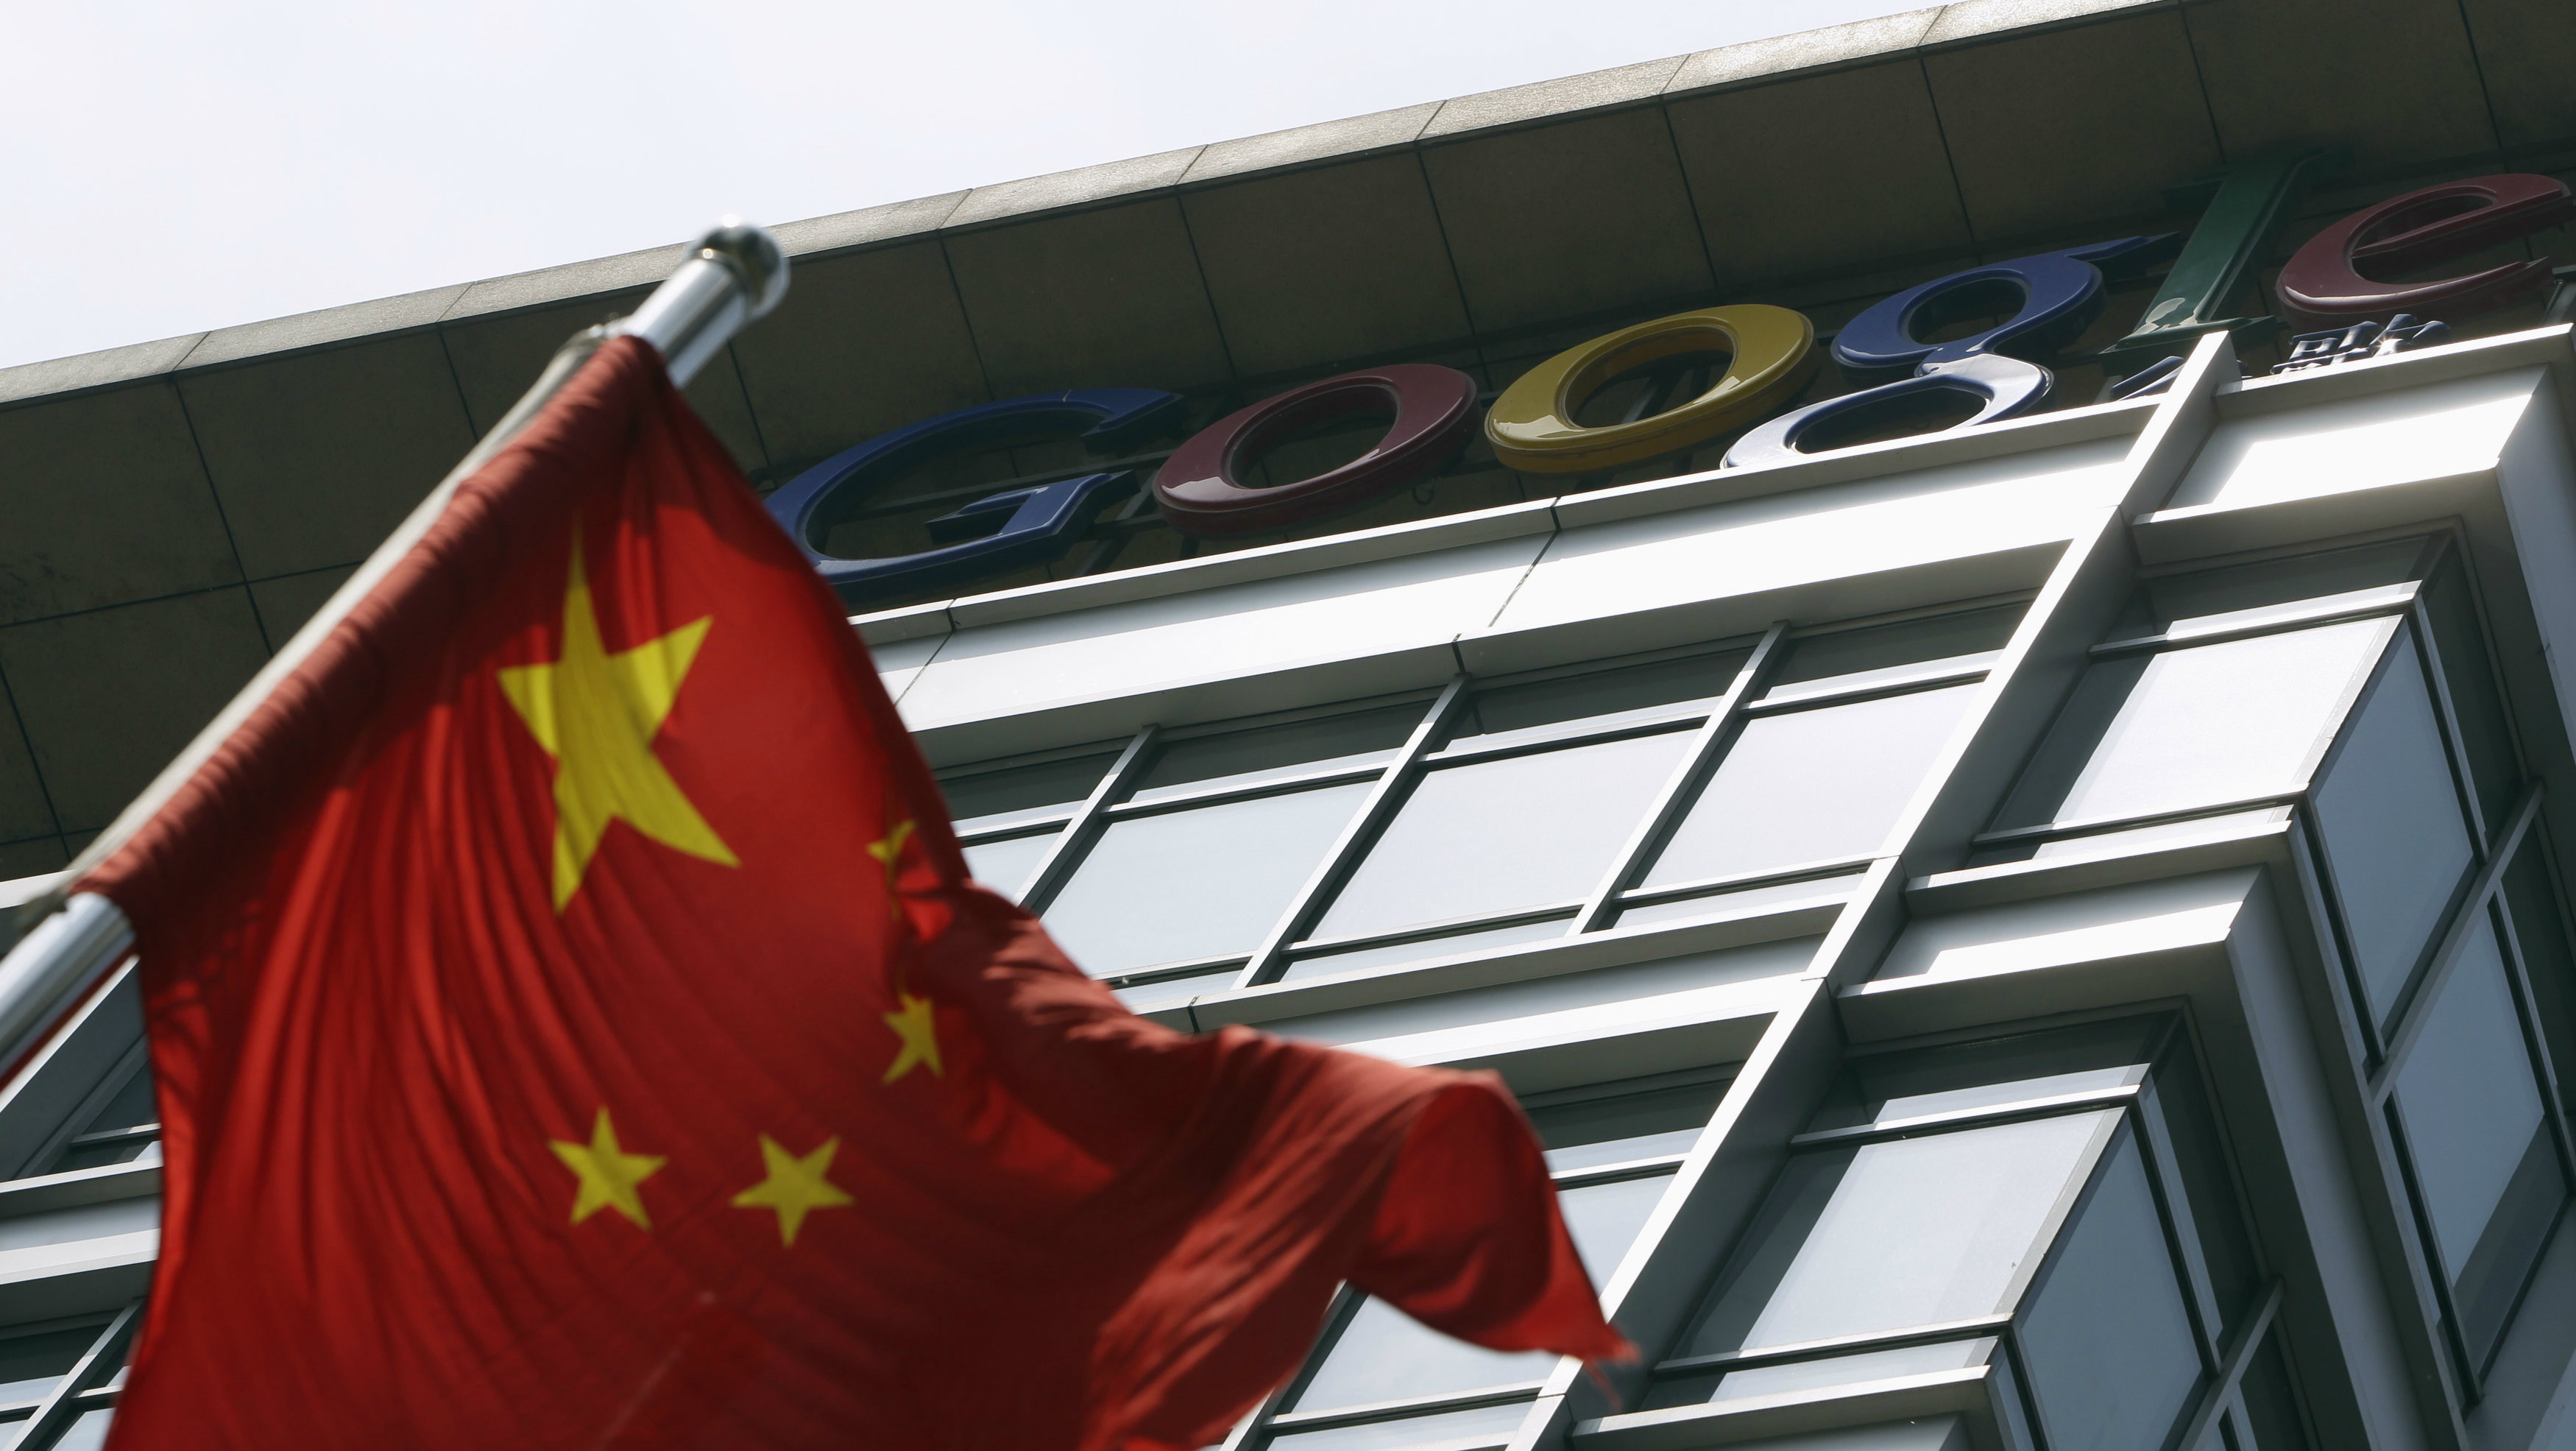 A Chinese national flag waves in front of the former headquarters of Google China in Beijing June 2, 2011. Suspected Chinese hackers tried to steal the passwords of hundreds of Google email account holders, including those of senior U.S. government officials, Chinese activists and journalists, the Internet company said.